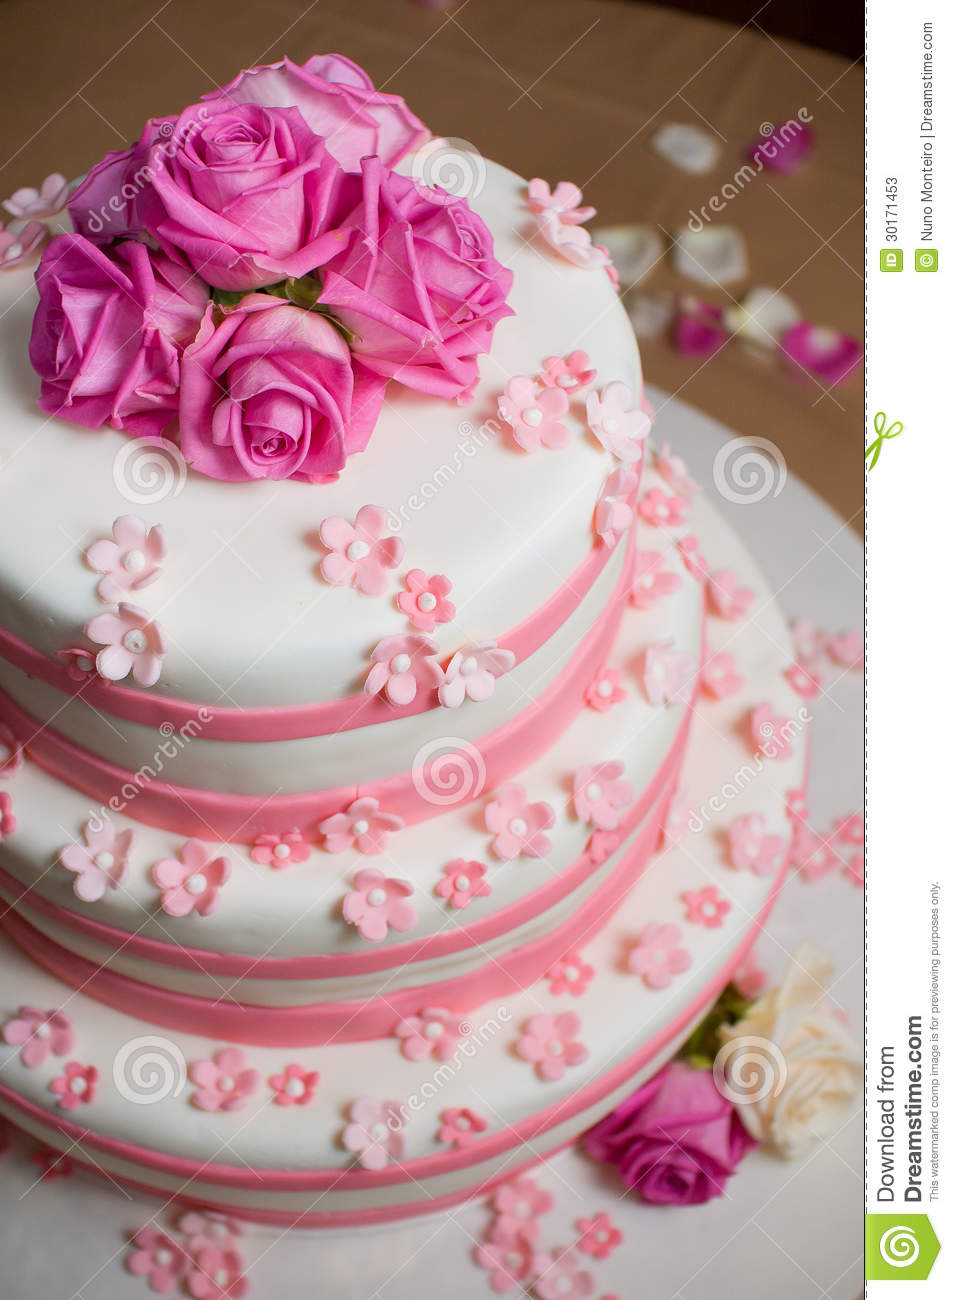 wedding cake decorated with roses stock photos   image